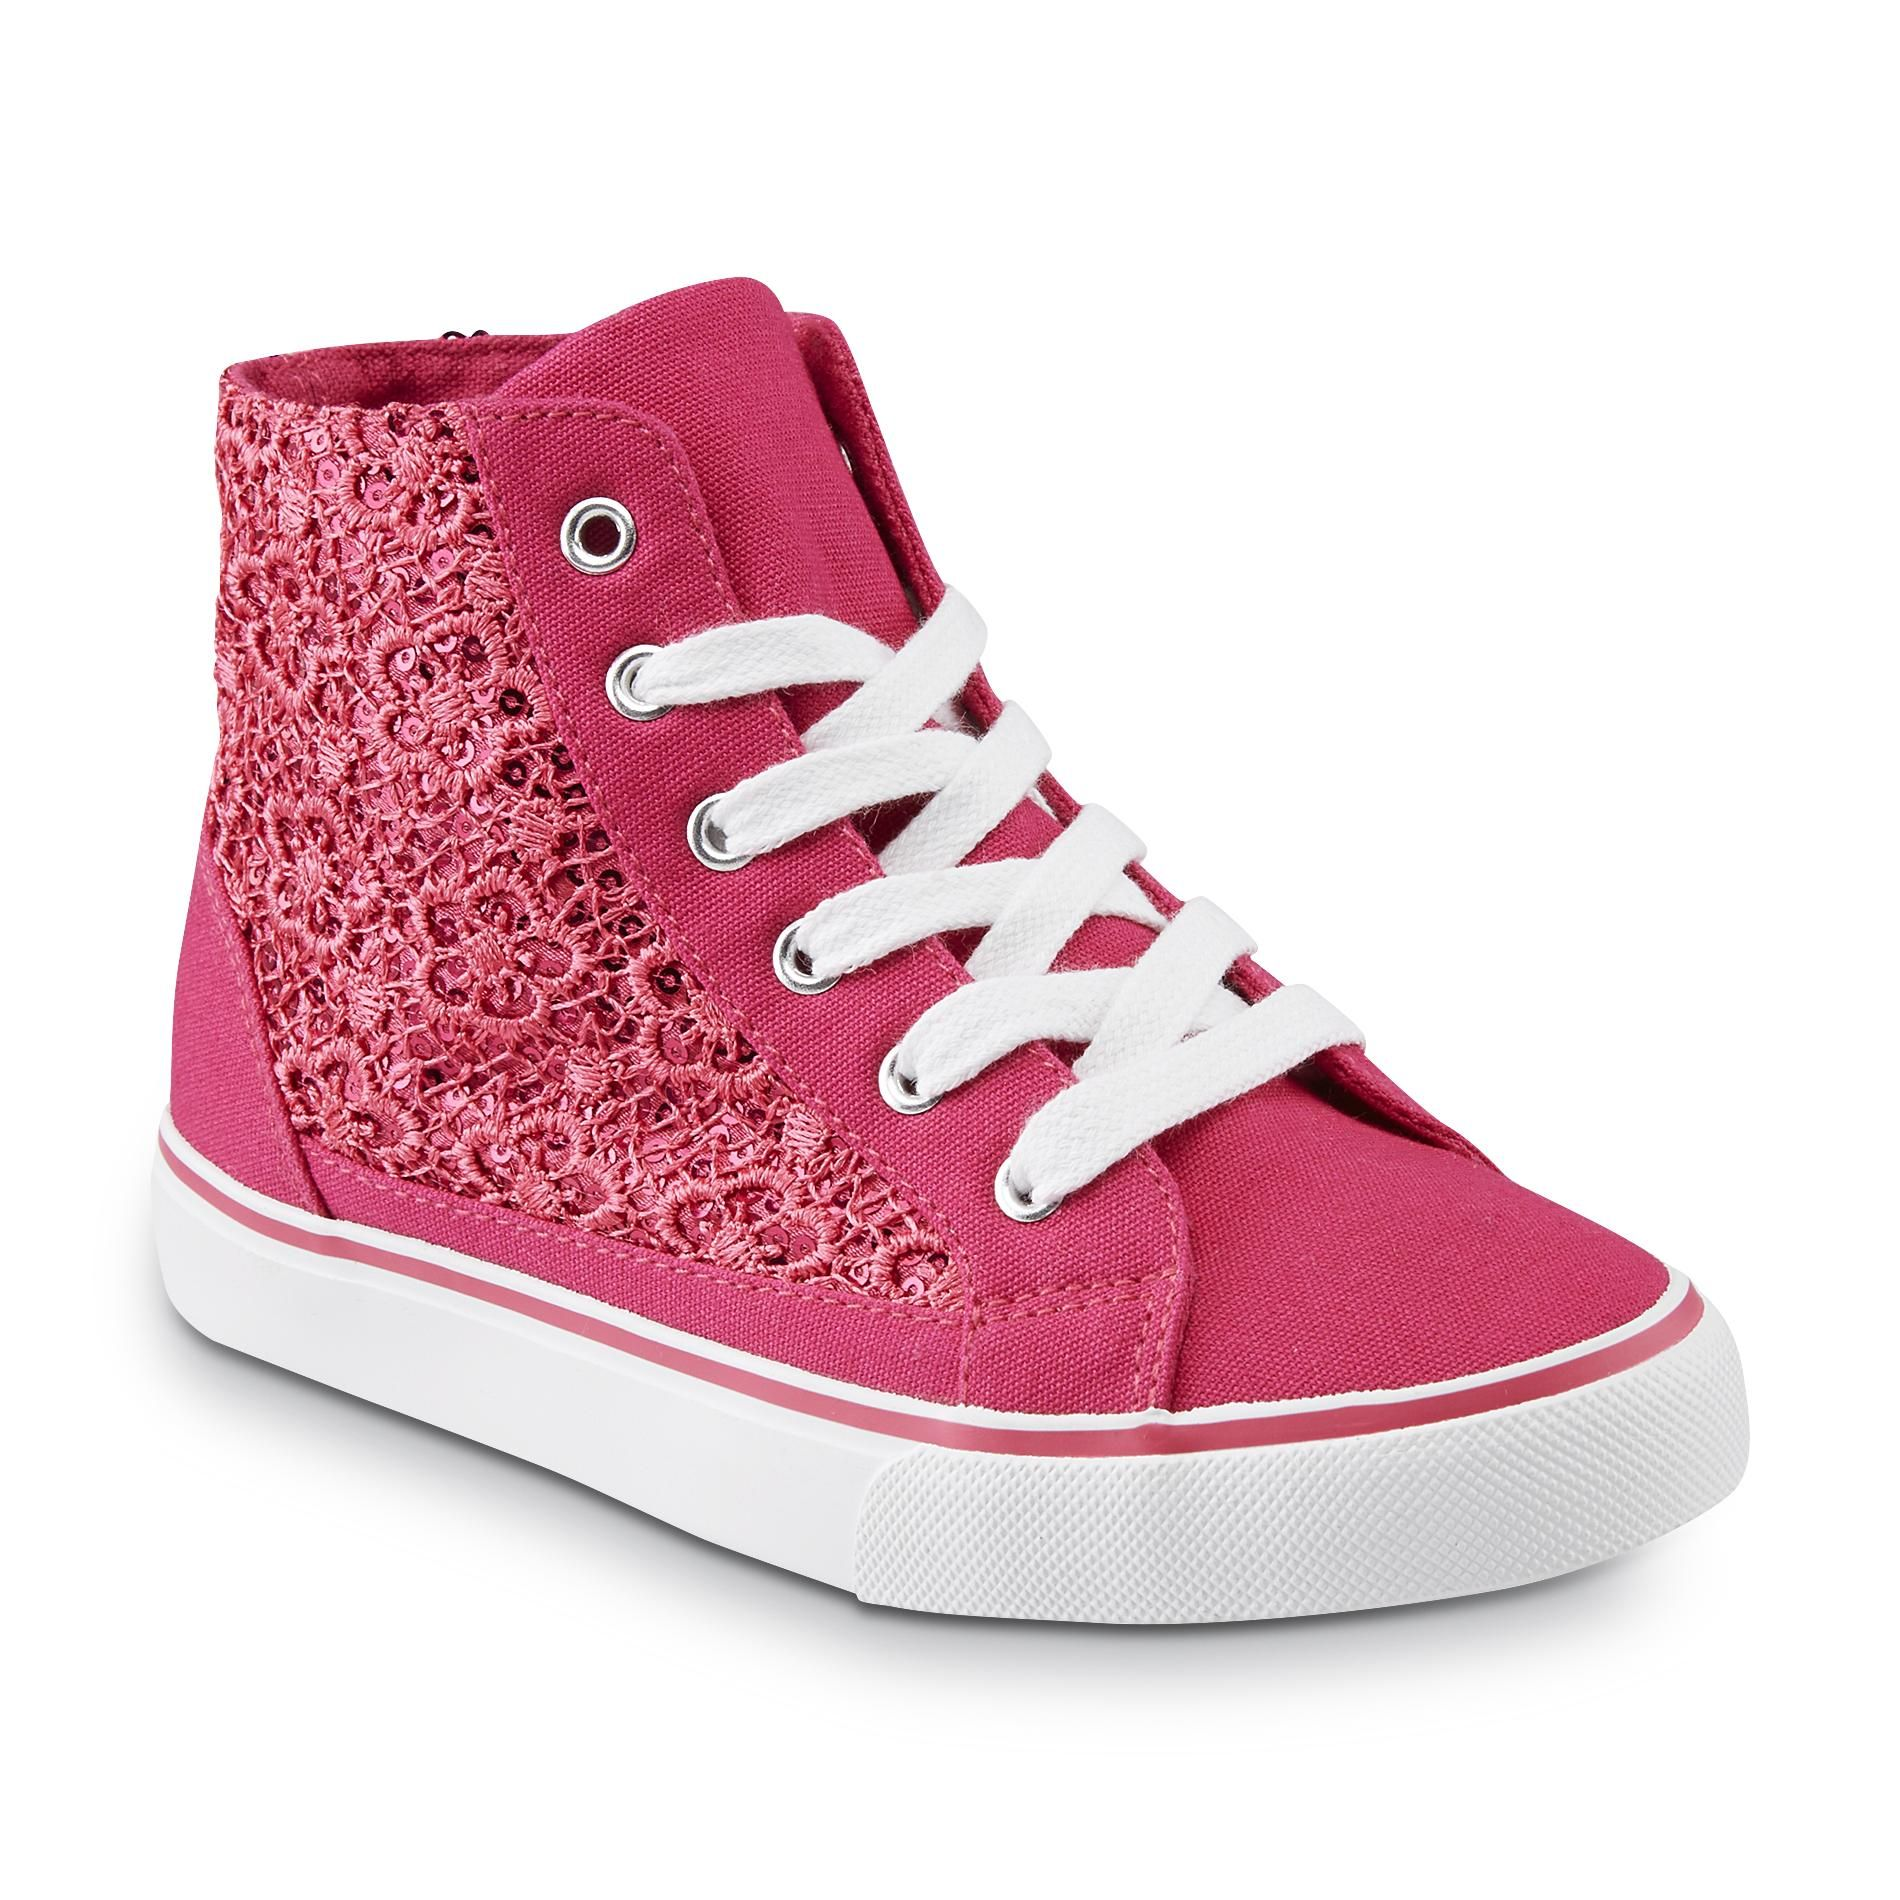 Girls' Shoes | Shoes For Girls Sears | PINKIE STEPS | Kid